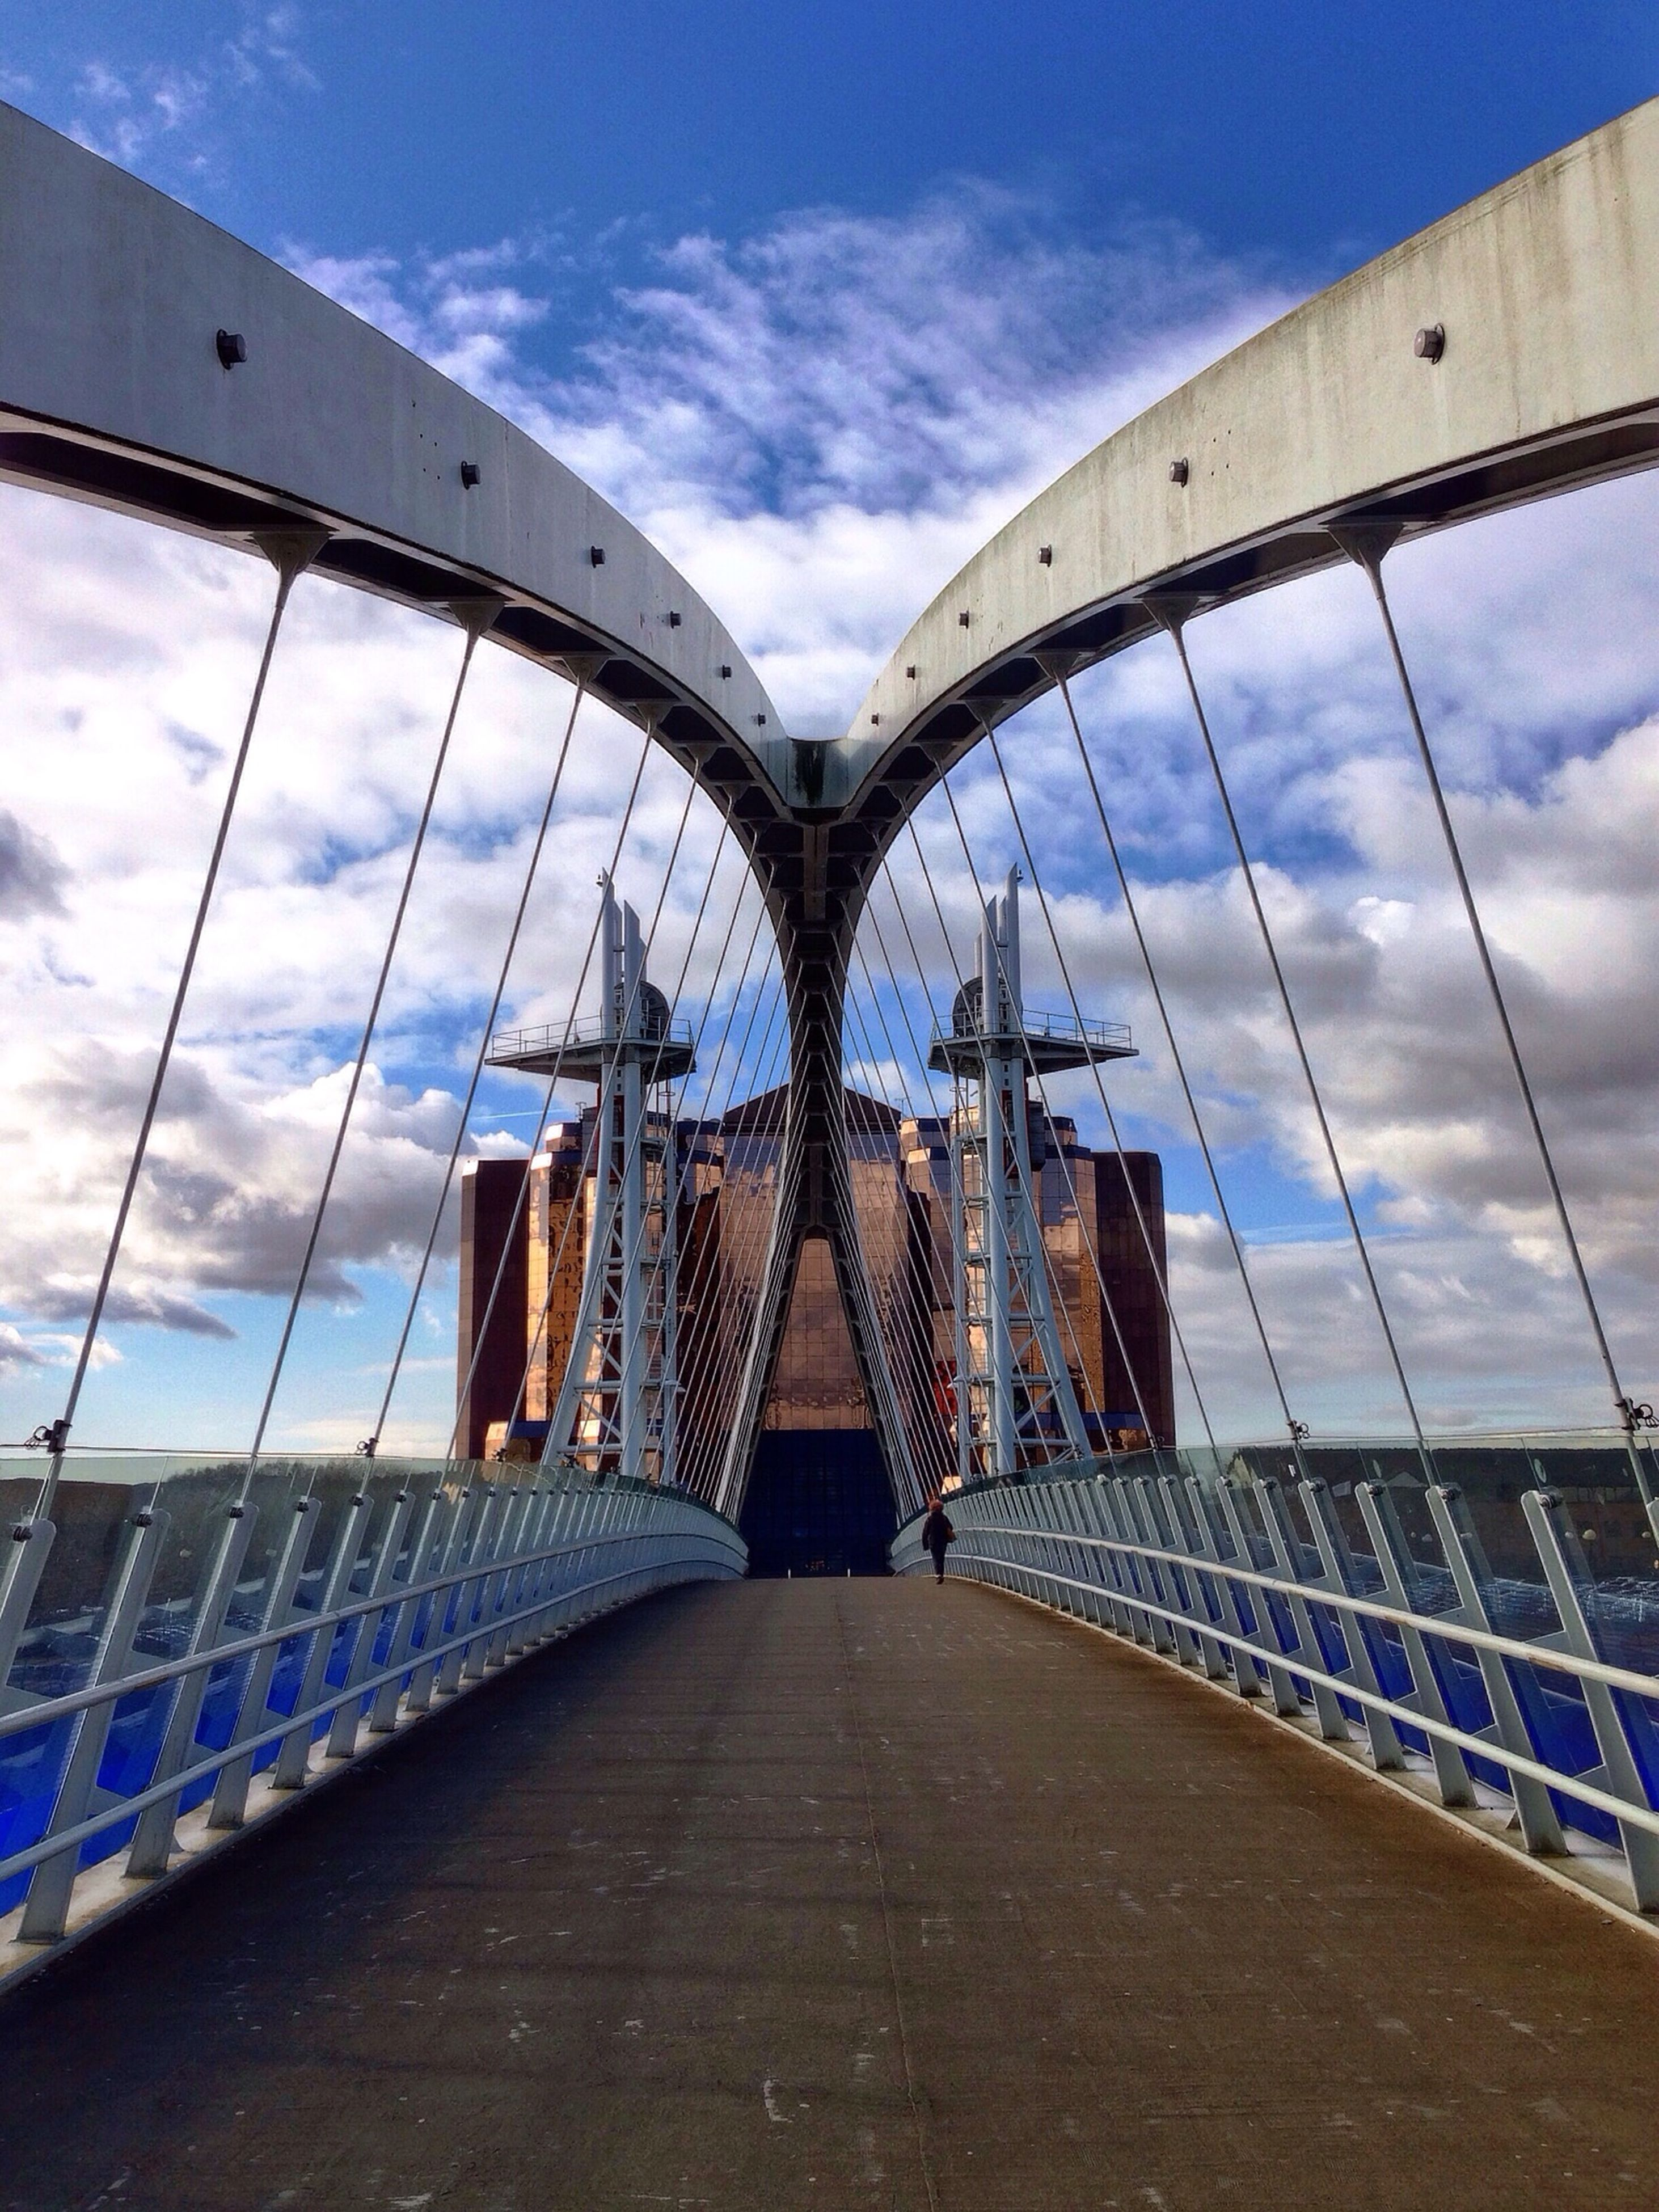 architecture, built structure, the way forward, sky, arch, diminishing perspective, bridge - man made structure, building exterior, connection, cloud - sky, cloud, vanishing point, engineering, blue, day, bridge, long, walkway, transportation, city